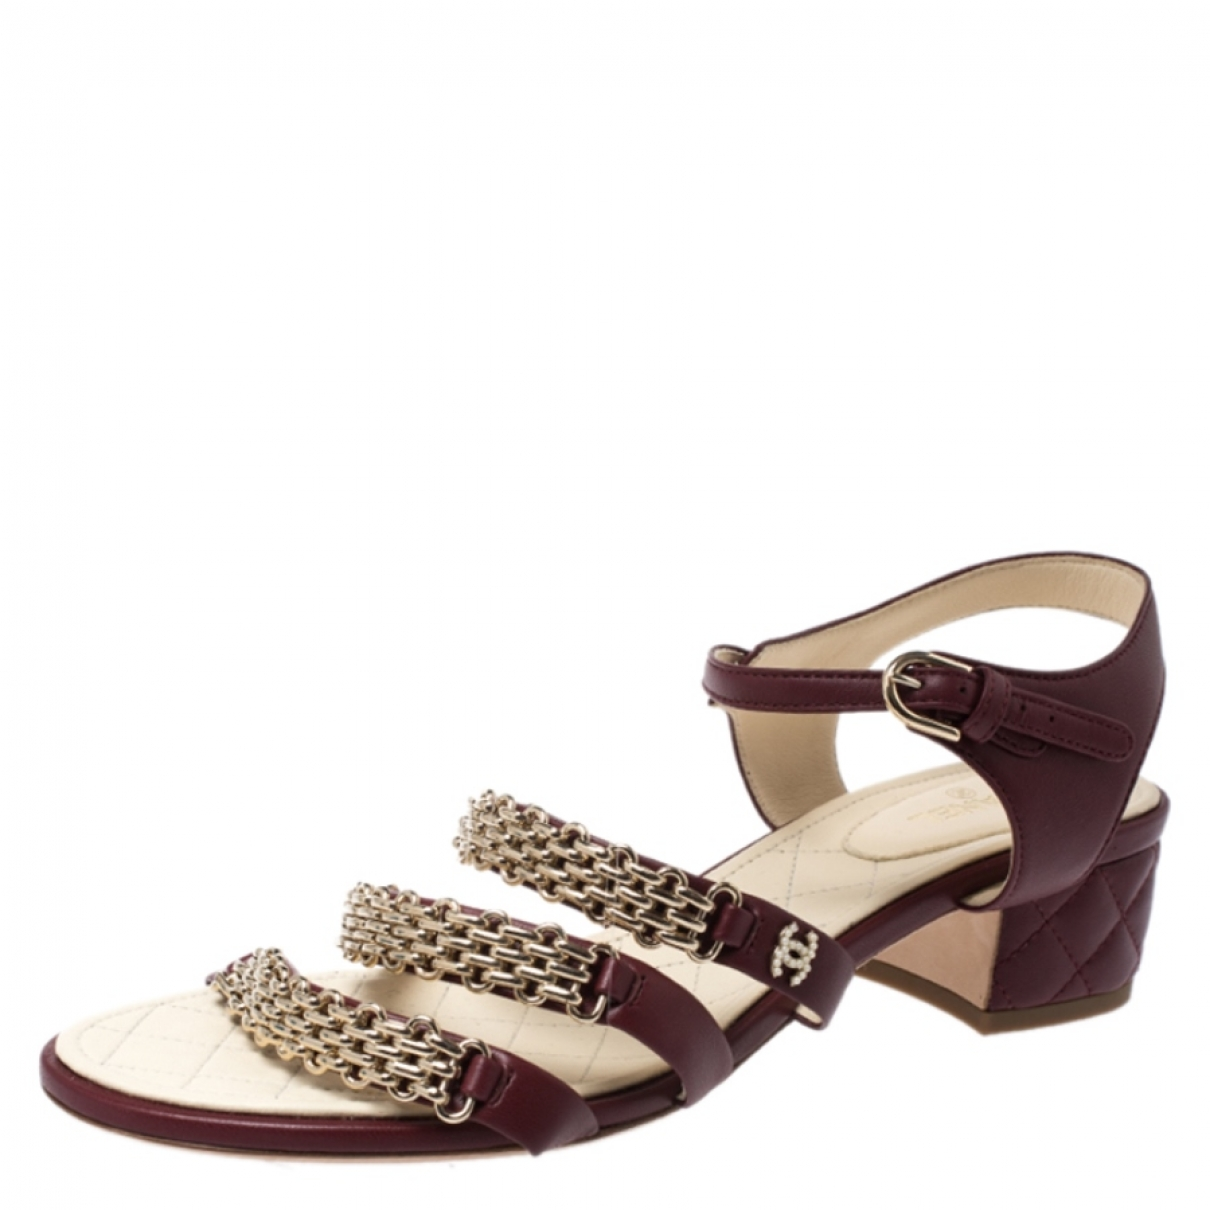 Chanel \N Burgundy Leather Sandals for Women 10.5 US